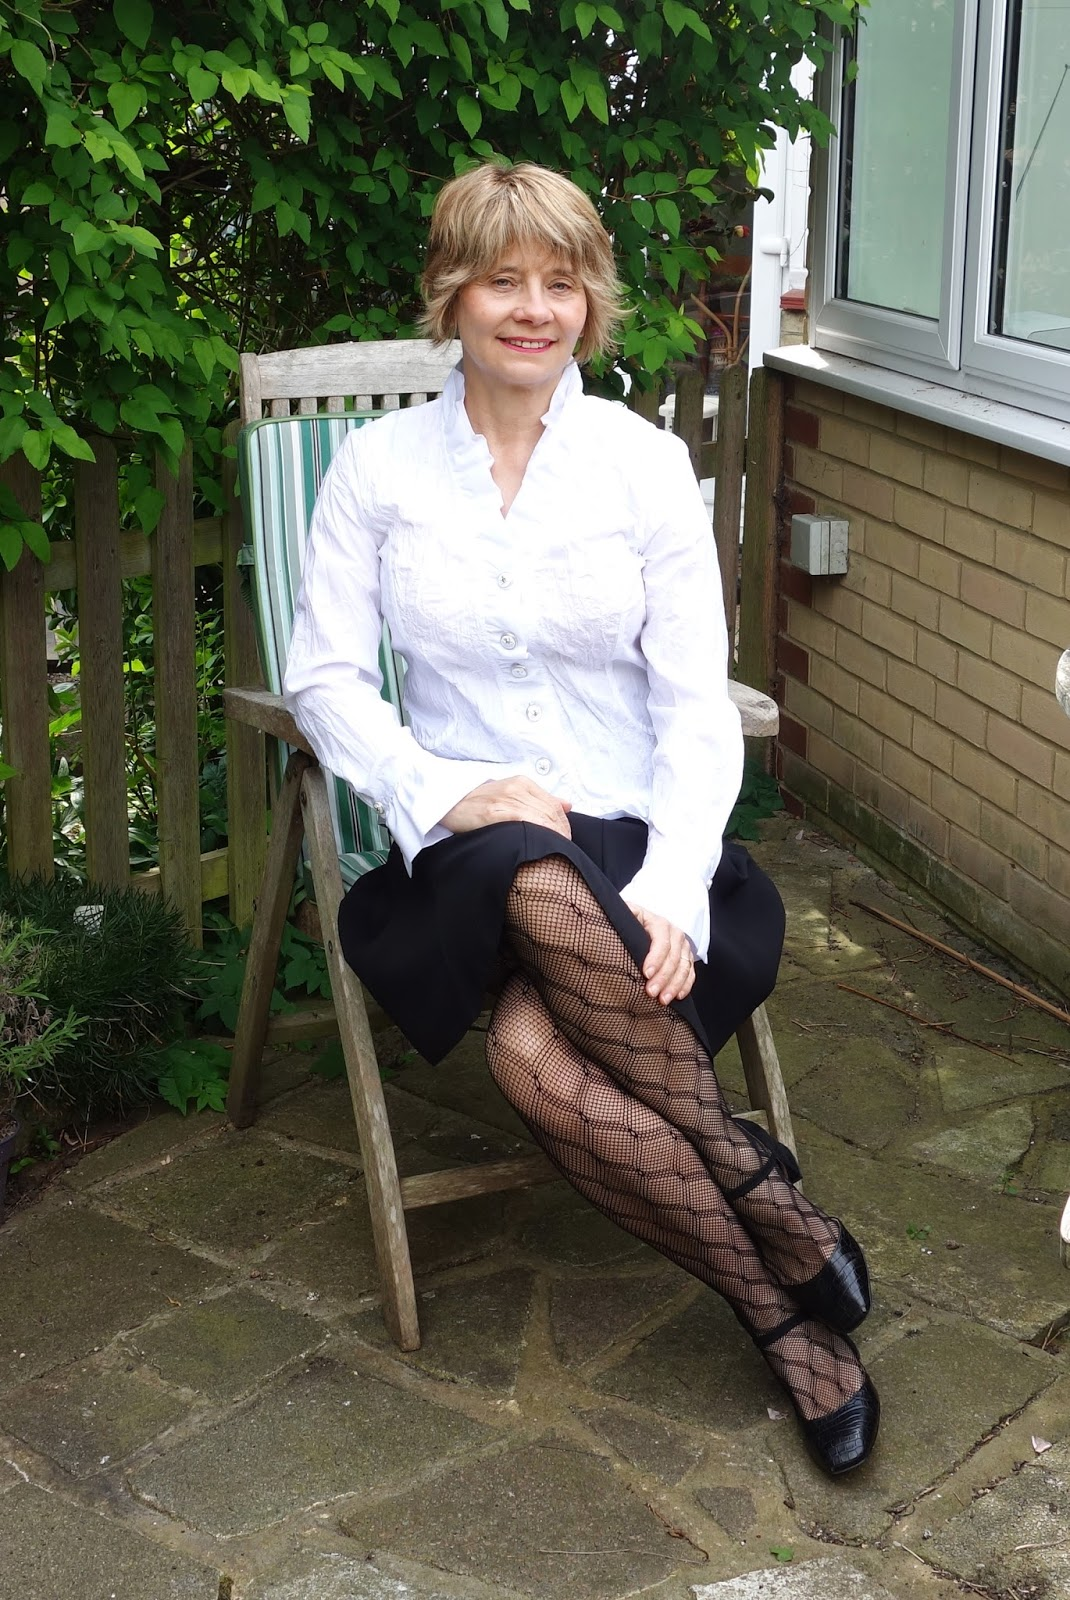 Styling a smart work outfit for summer with black diamond net tights from Charnos